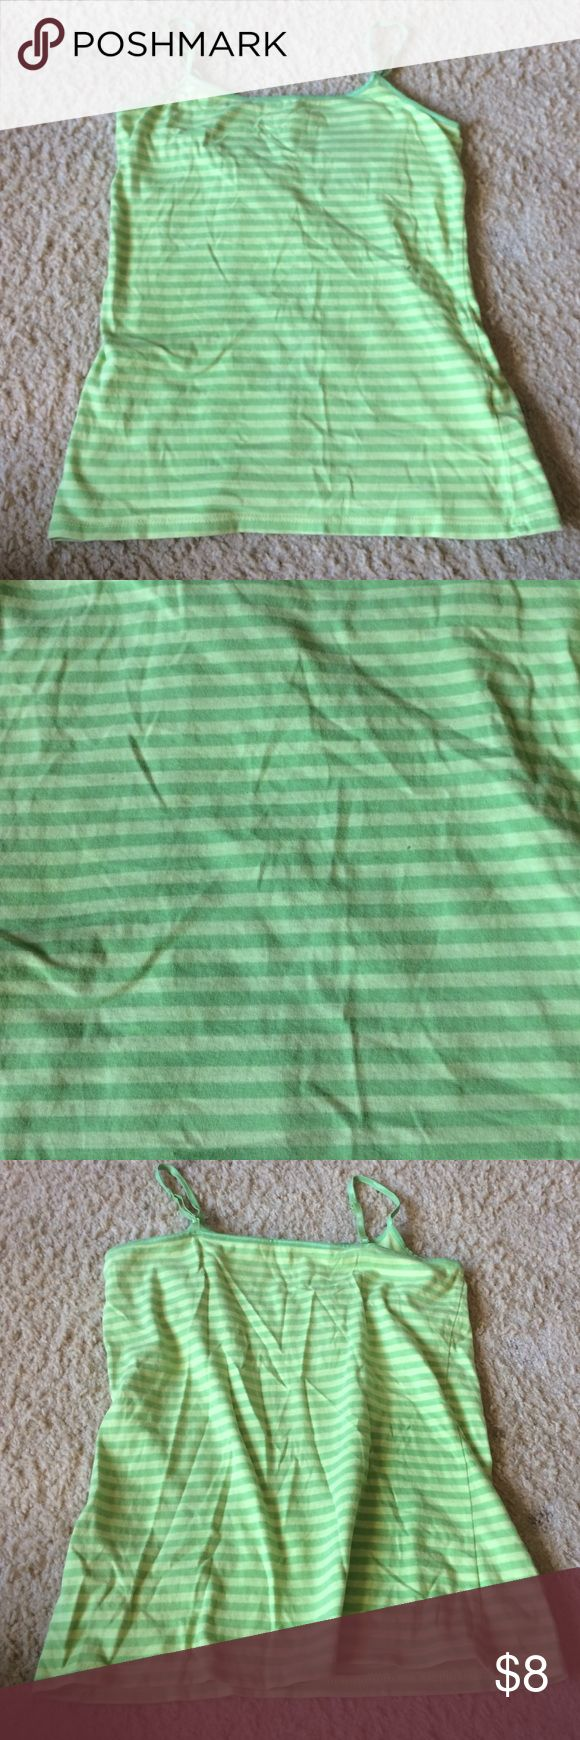 Lime green cami with stripes Lime green cami tank top with stripes. Adjustable straps and built in bra. SO Tops Camisoles